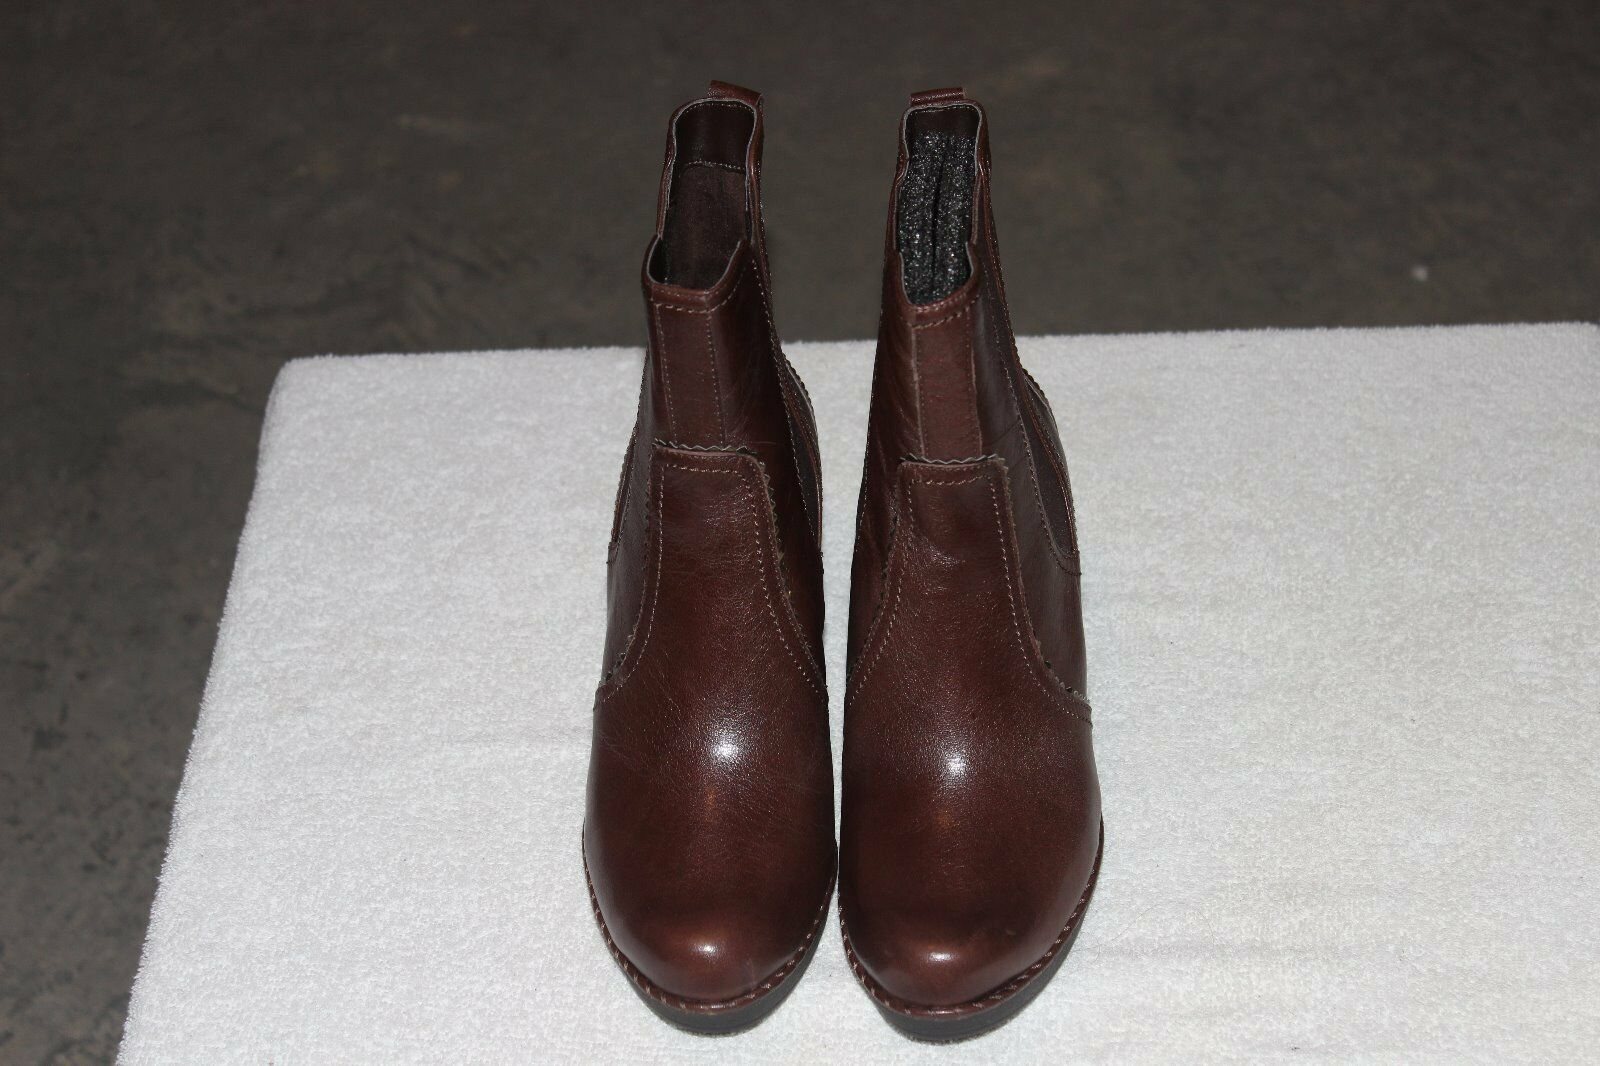 Rockport womens Anevia Chelsea boot K71965 size 8M